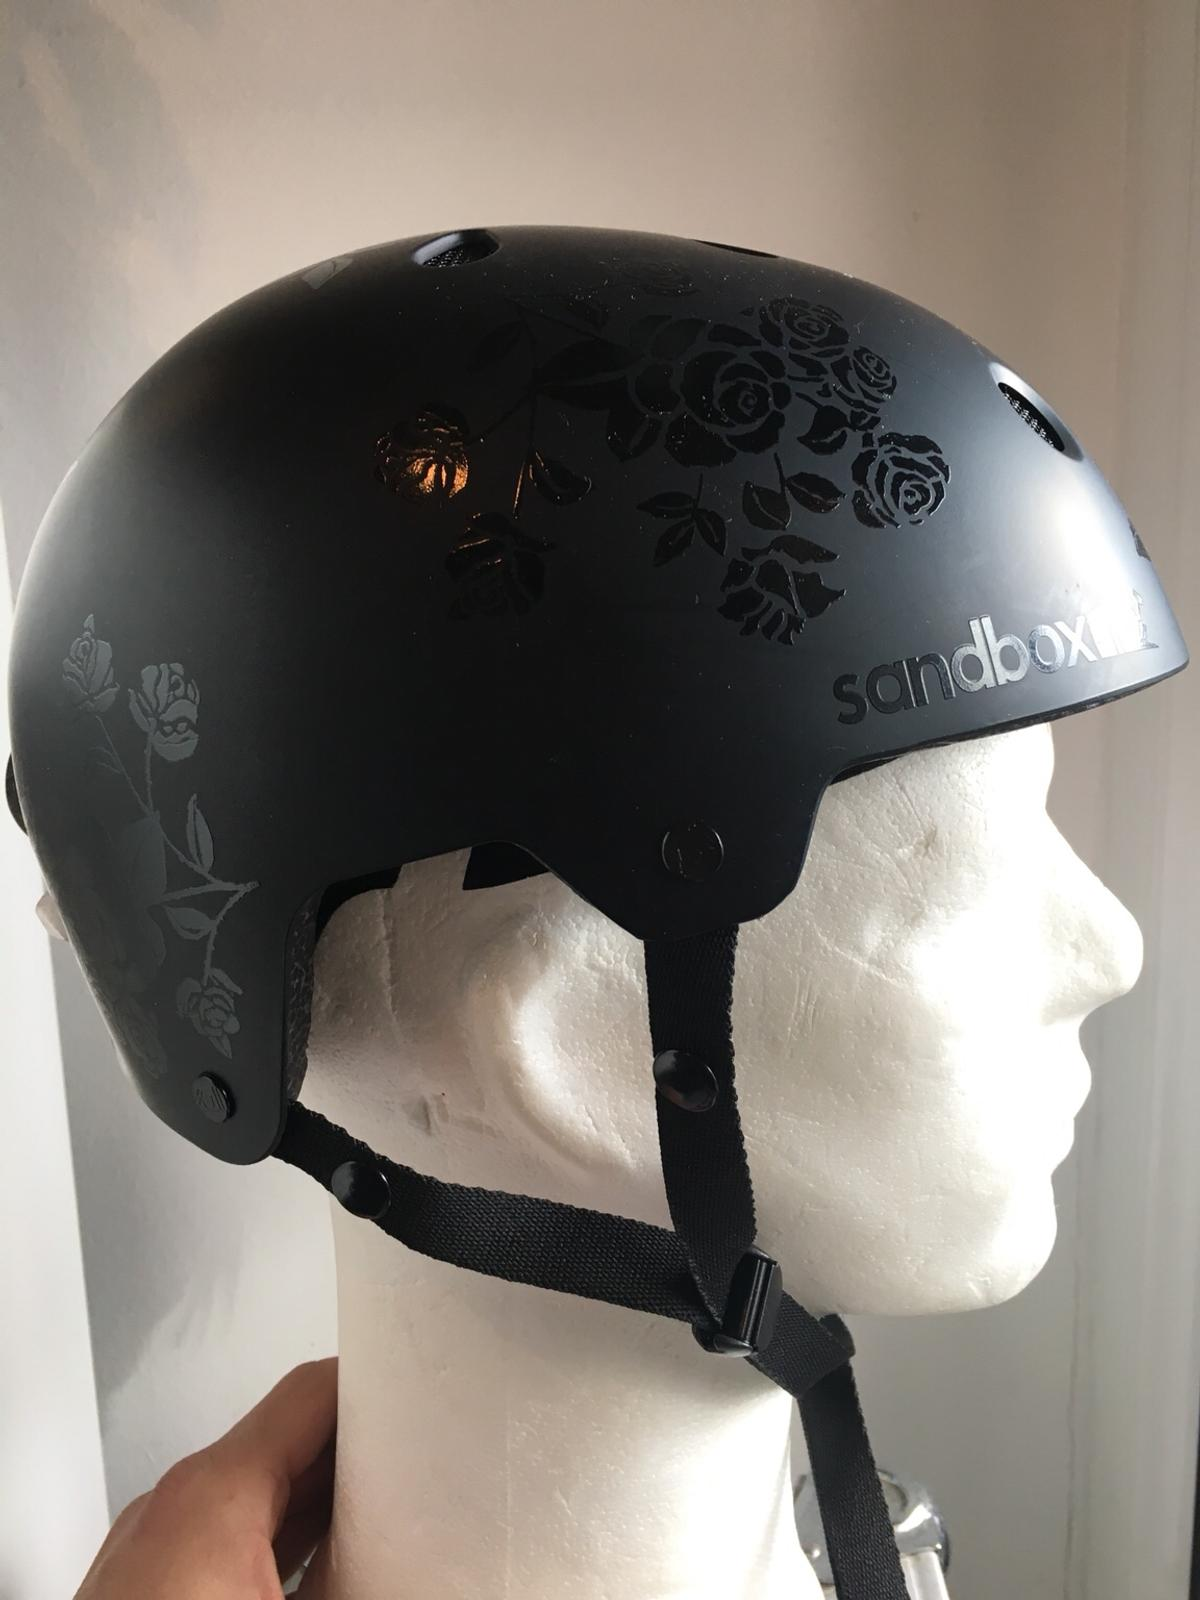 Sandbox Helm Girls Größe Medium neu